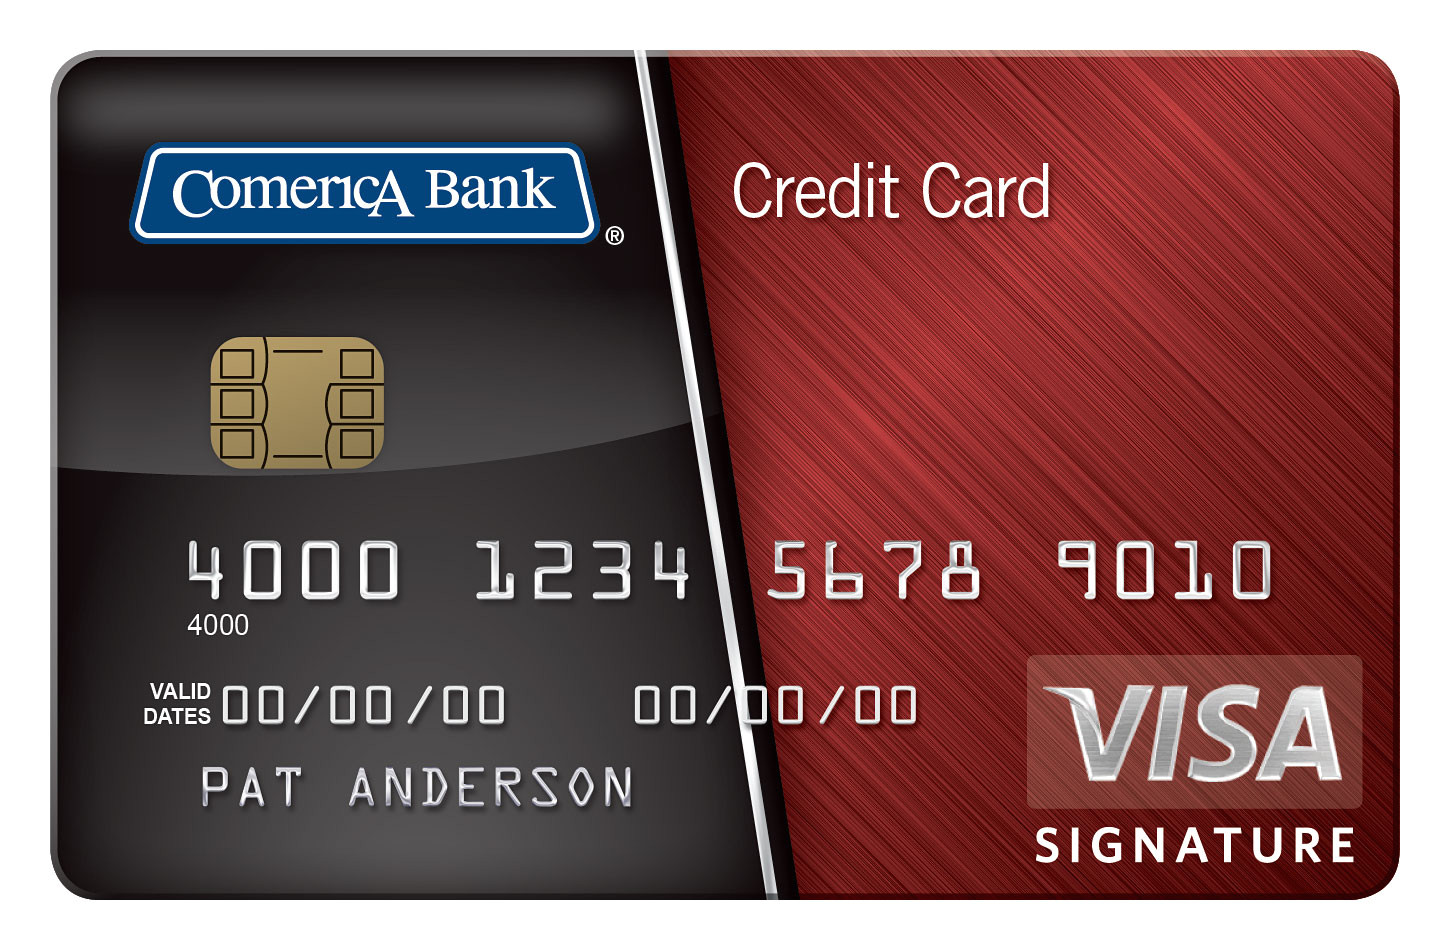 visaa real rewards card earn everyday rewards with every qualifying net purchase 7